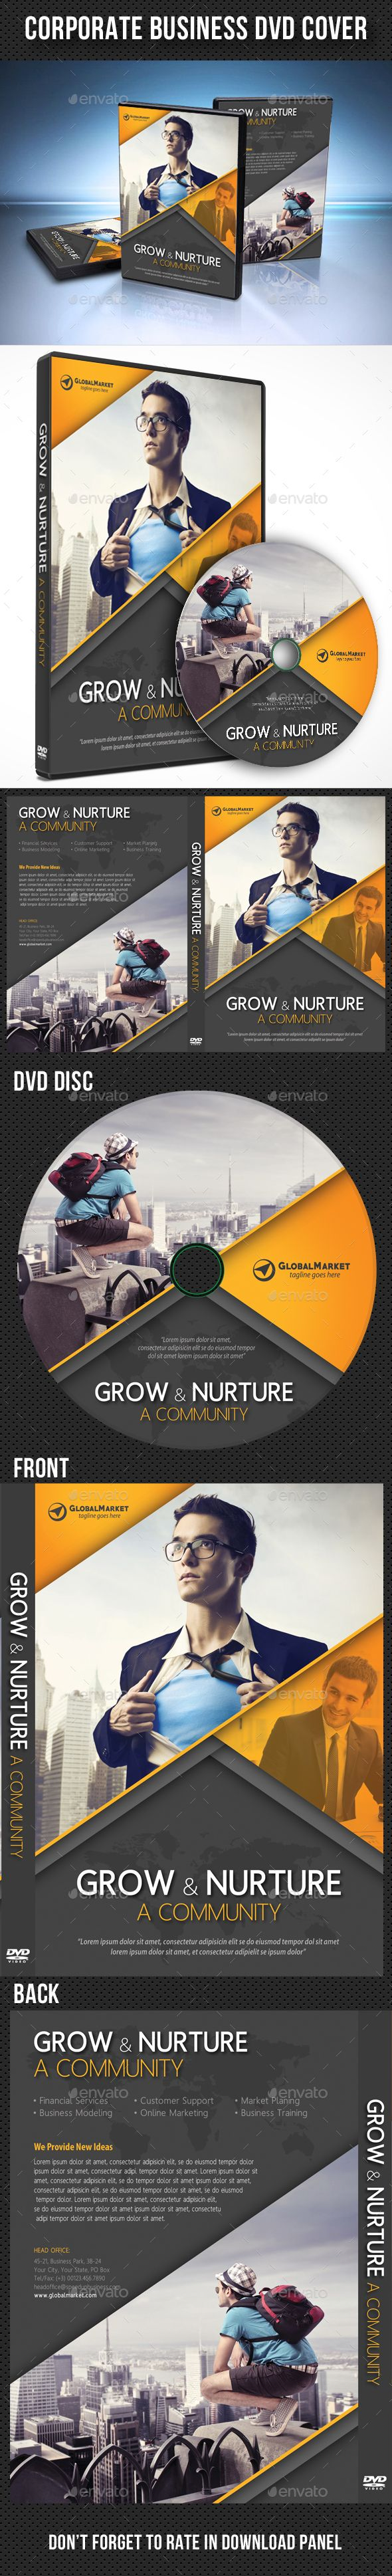 corporate business dvd cover template psd cd dvd cover templates